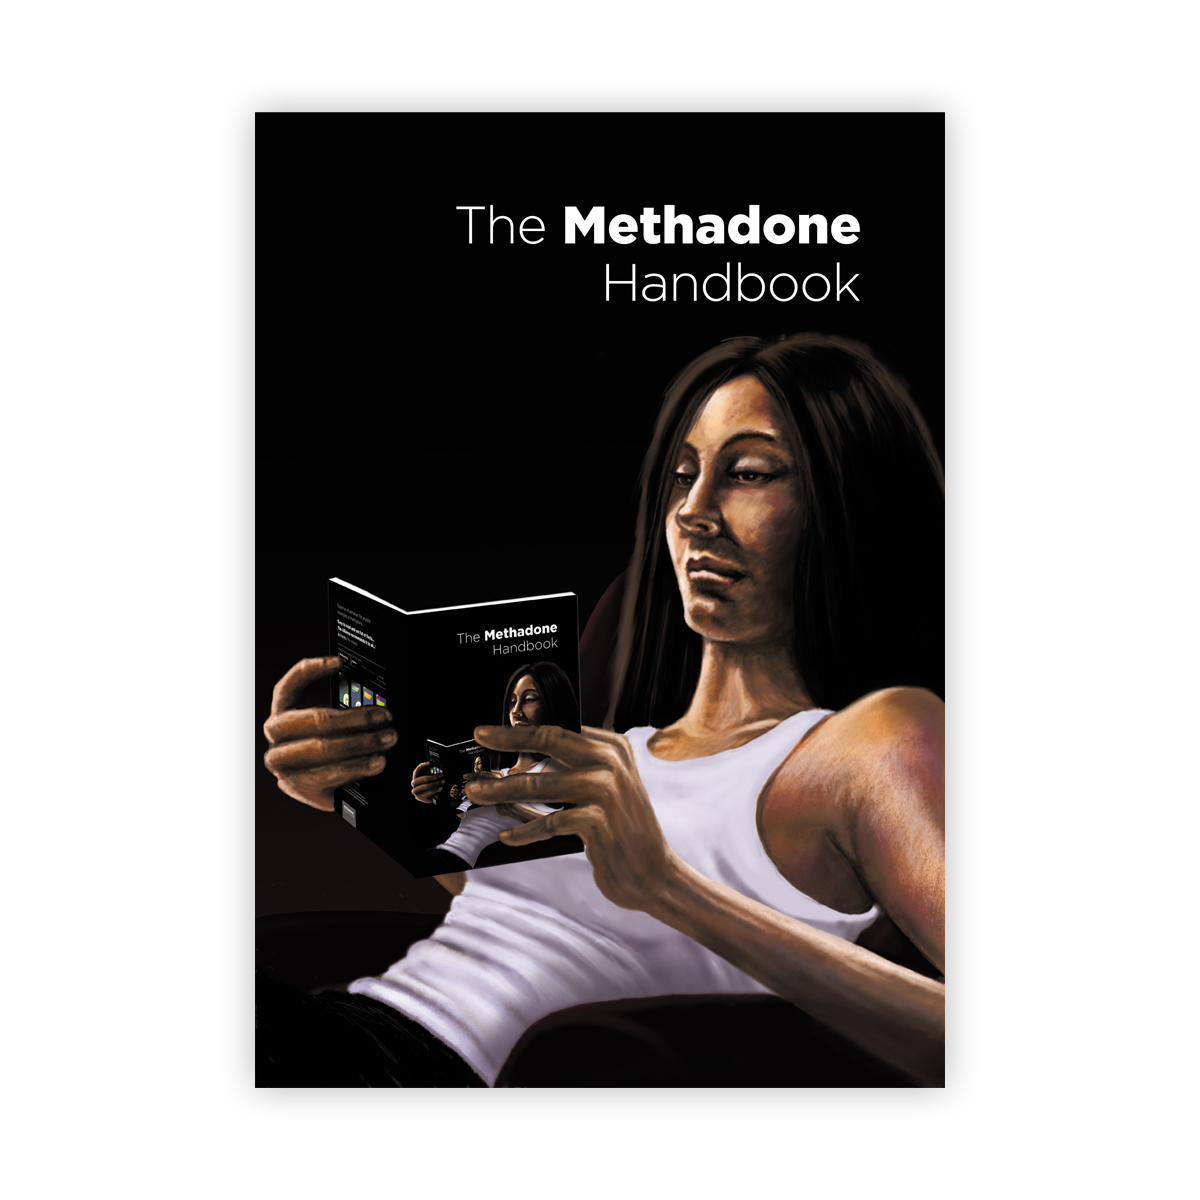 The Methadone Handbook